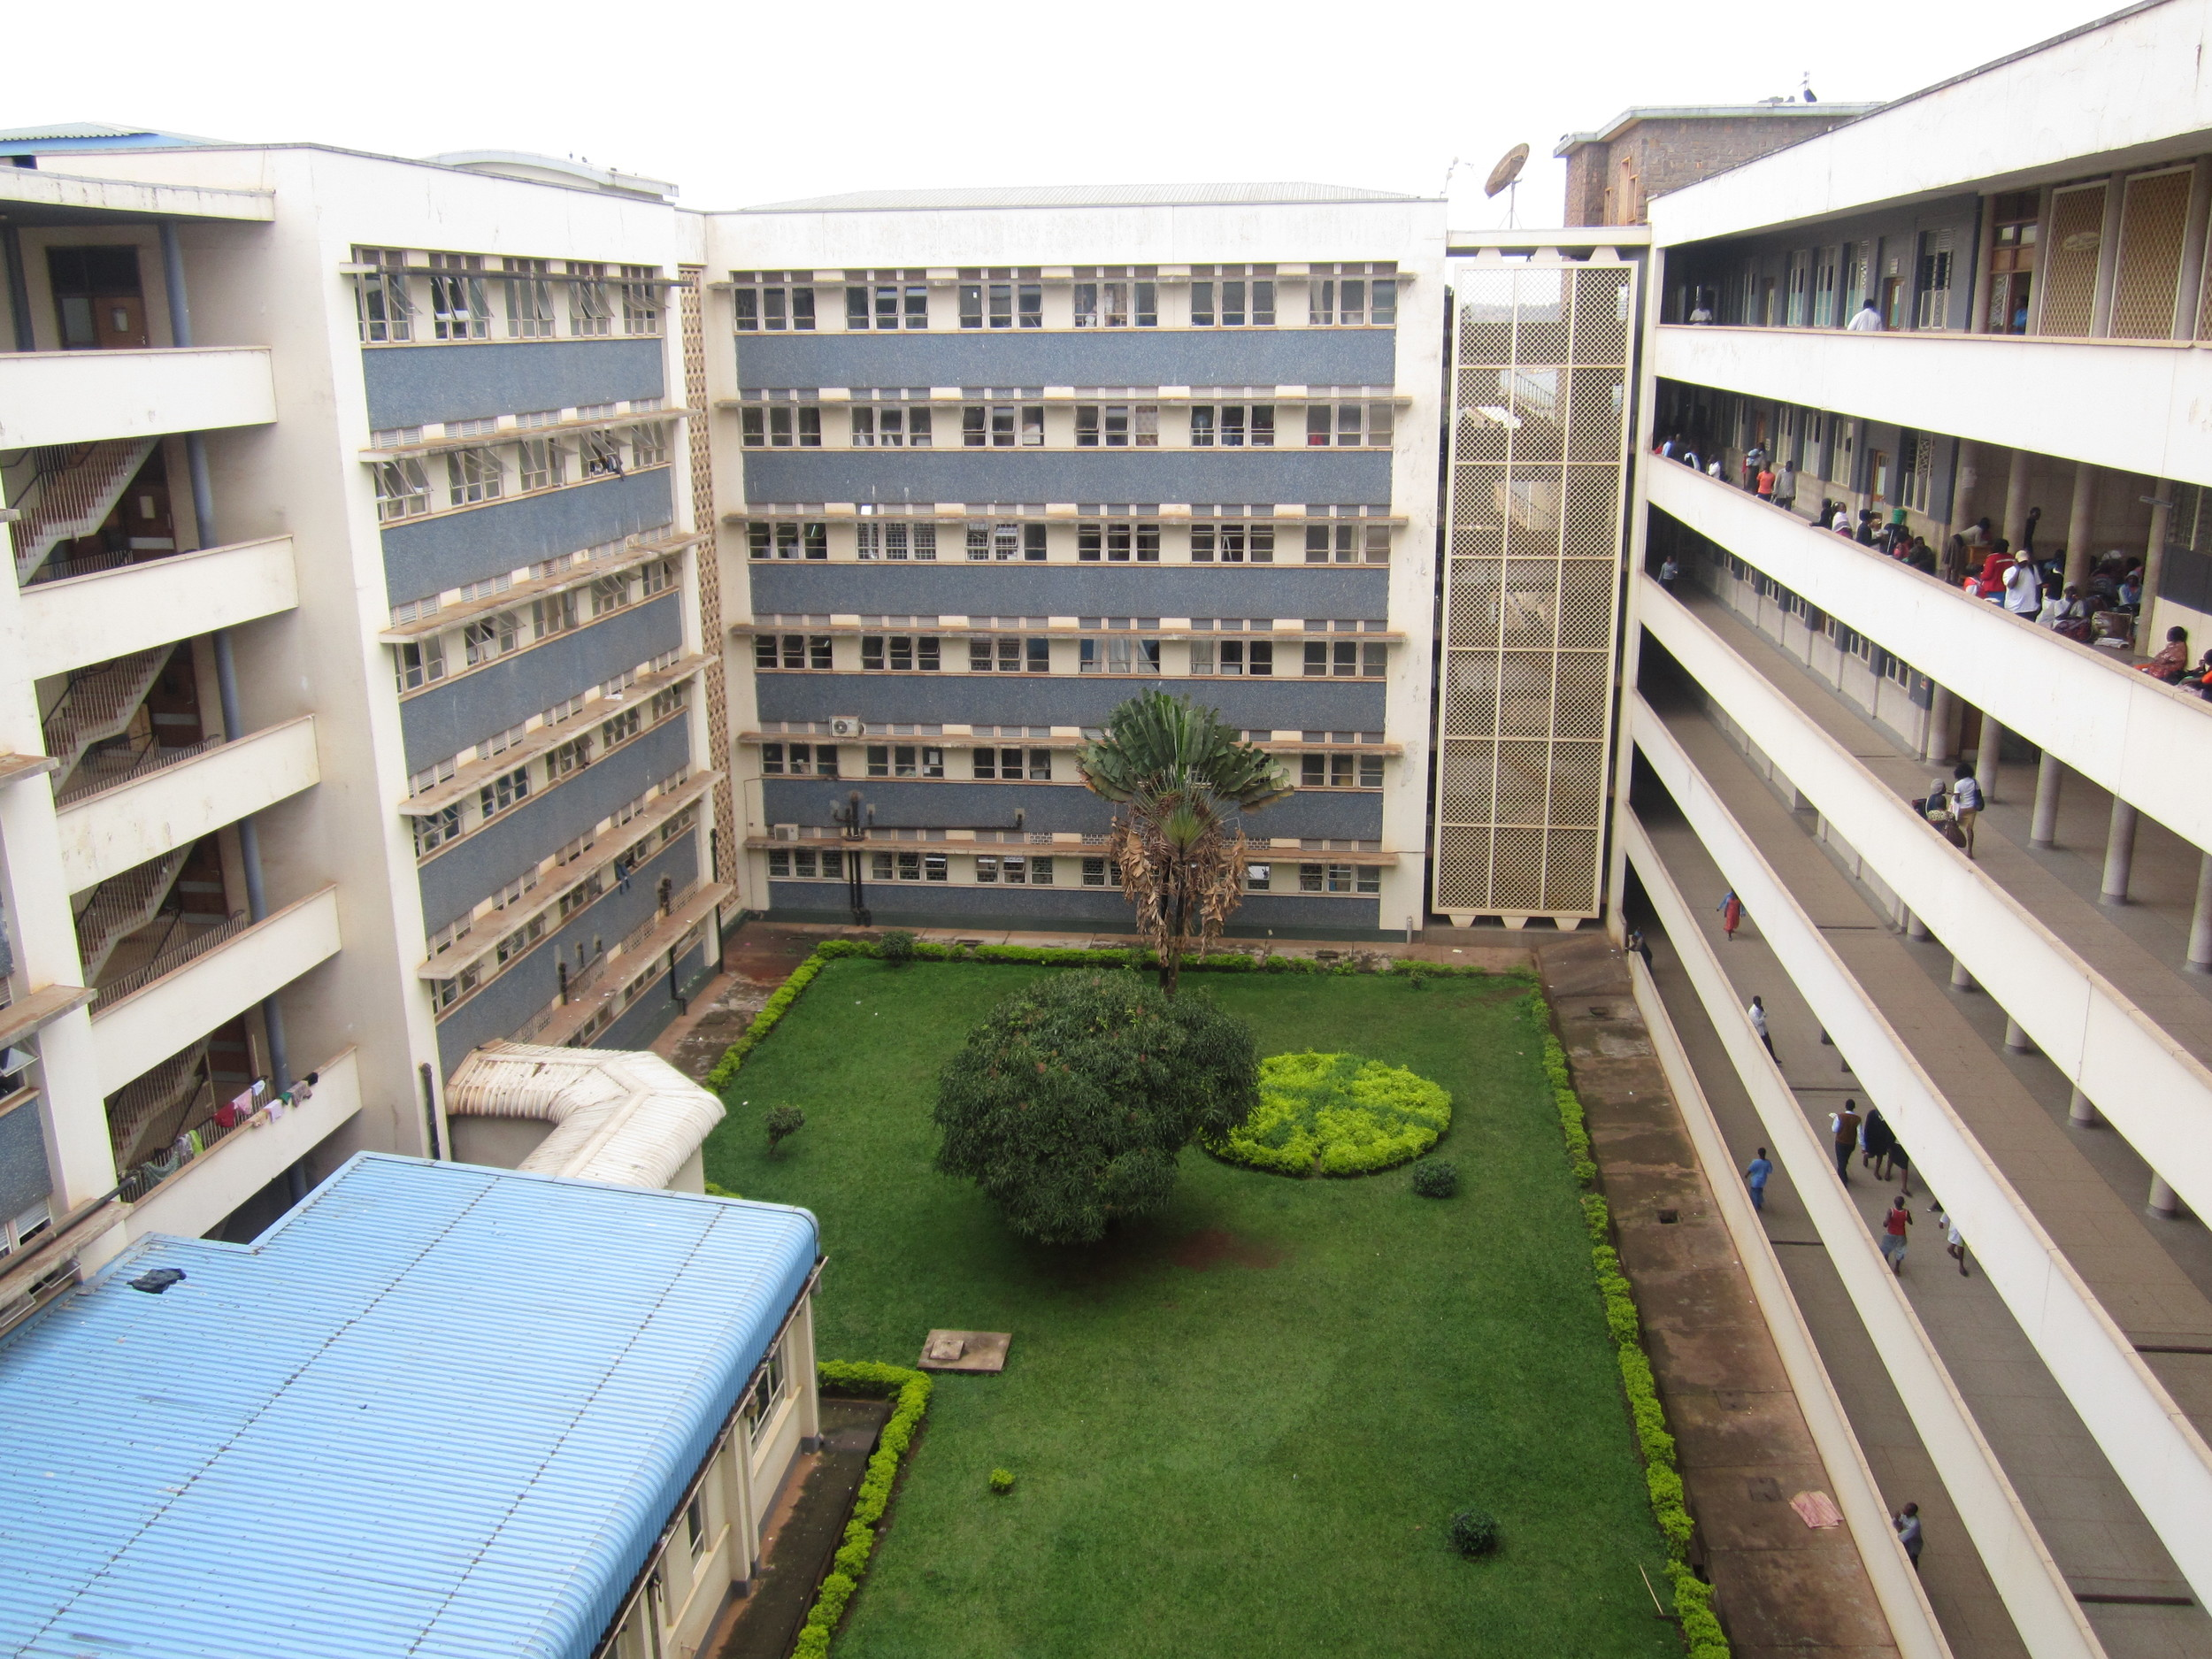 A student's view of Makarere University, the largest and oldest post-secondary educational institution in Uganda.